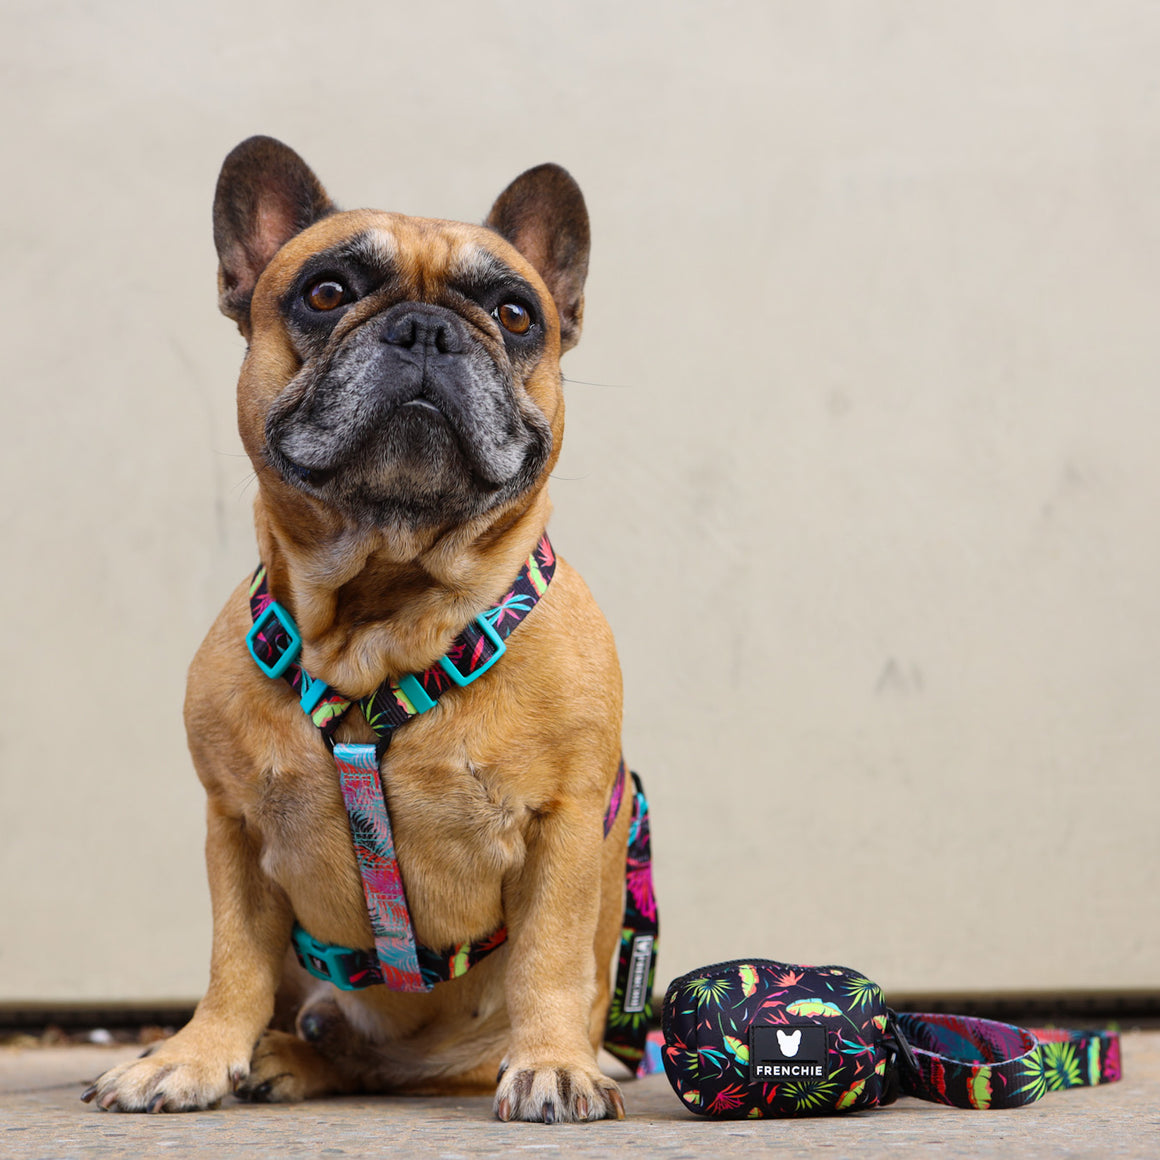 Frenchie Strap Harness - It's A Vibe